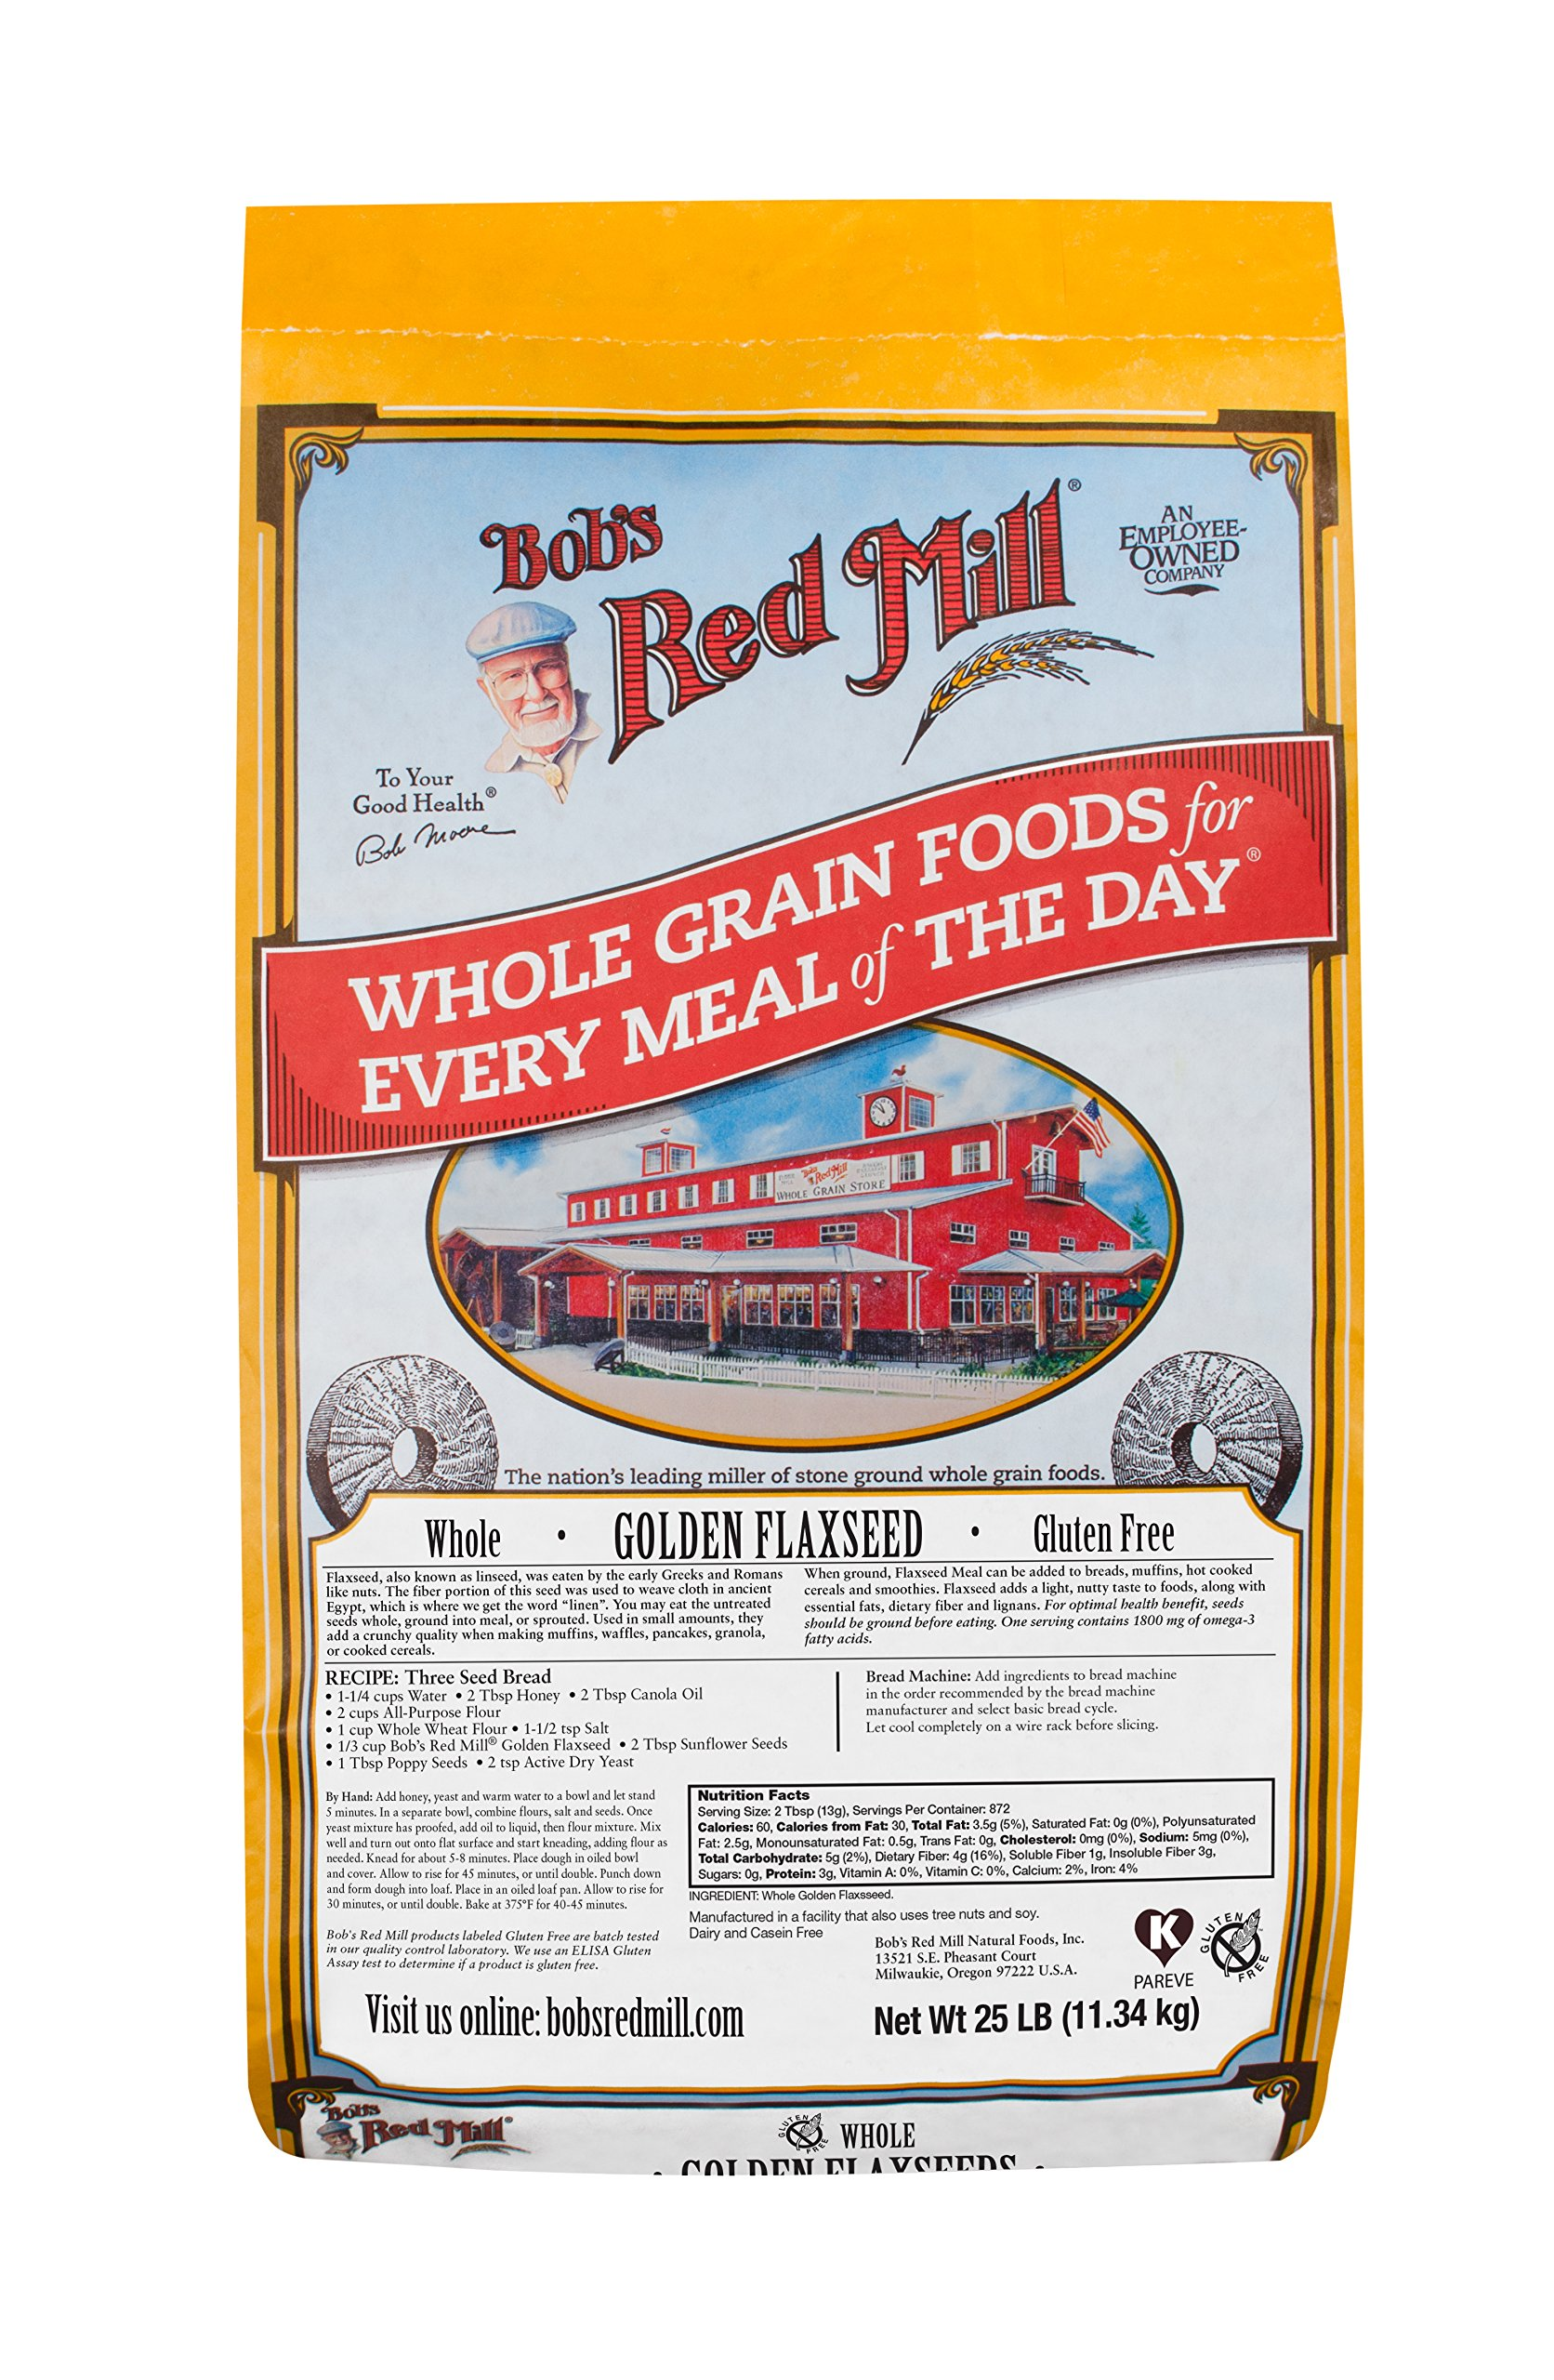 Bob's Red Mill Raw Whole Golden Flaxseed, 25 Pound